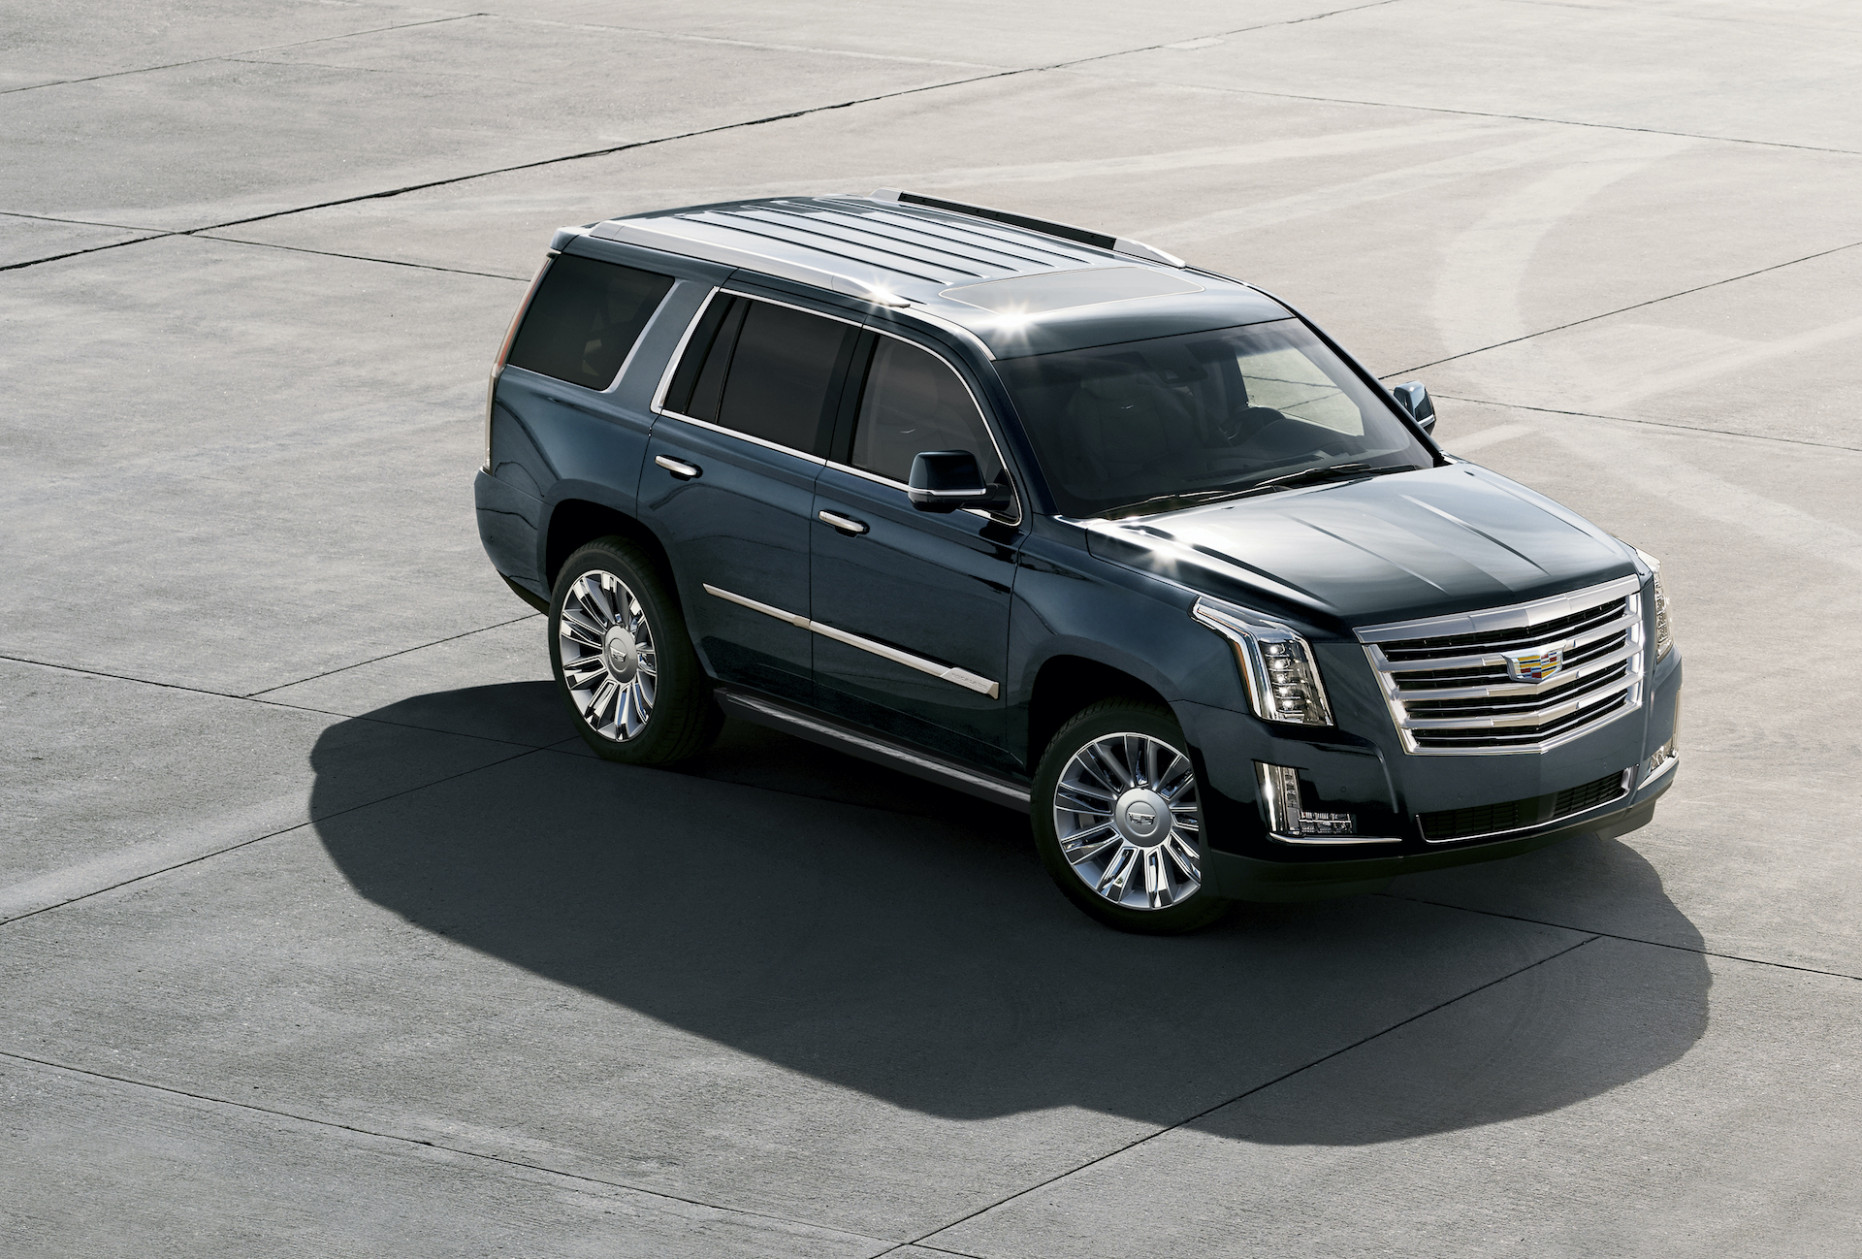 10 Cadillac Escalade Review, Ratings, Specs, Prices, and Photos ..